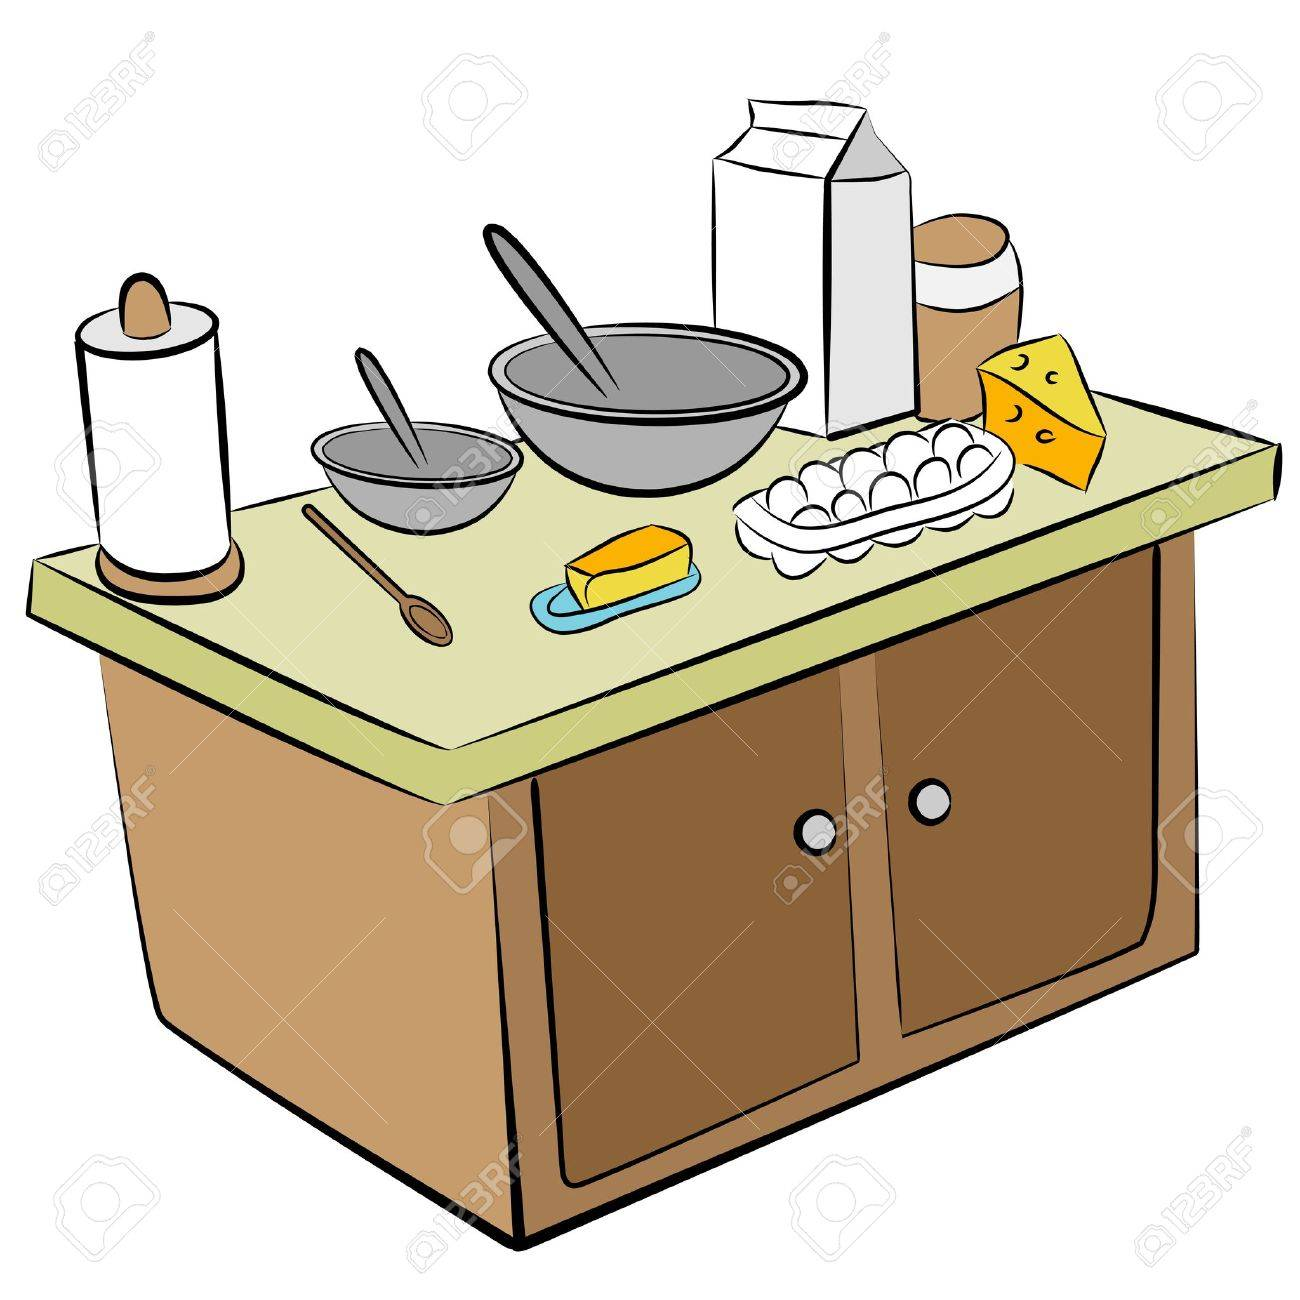 Cartoon kitchen counter gallery - Download